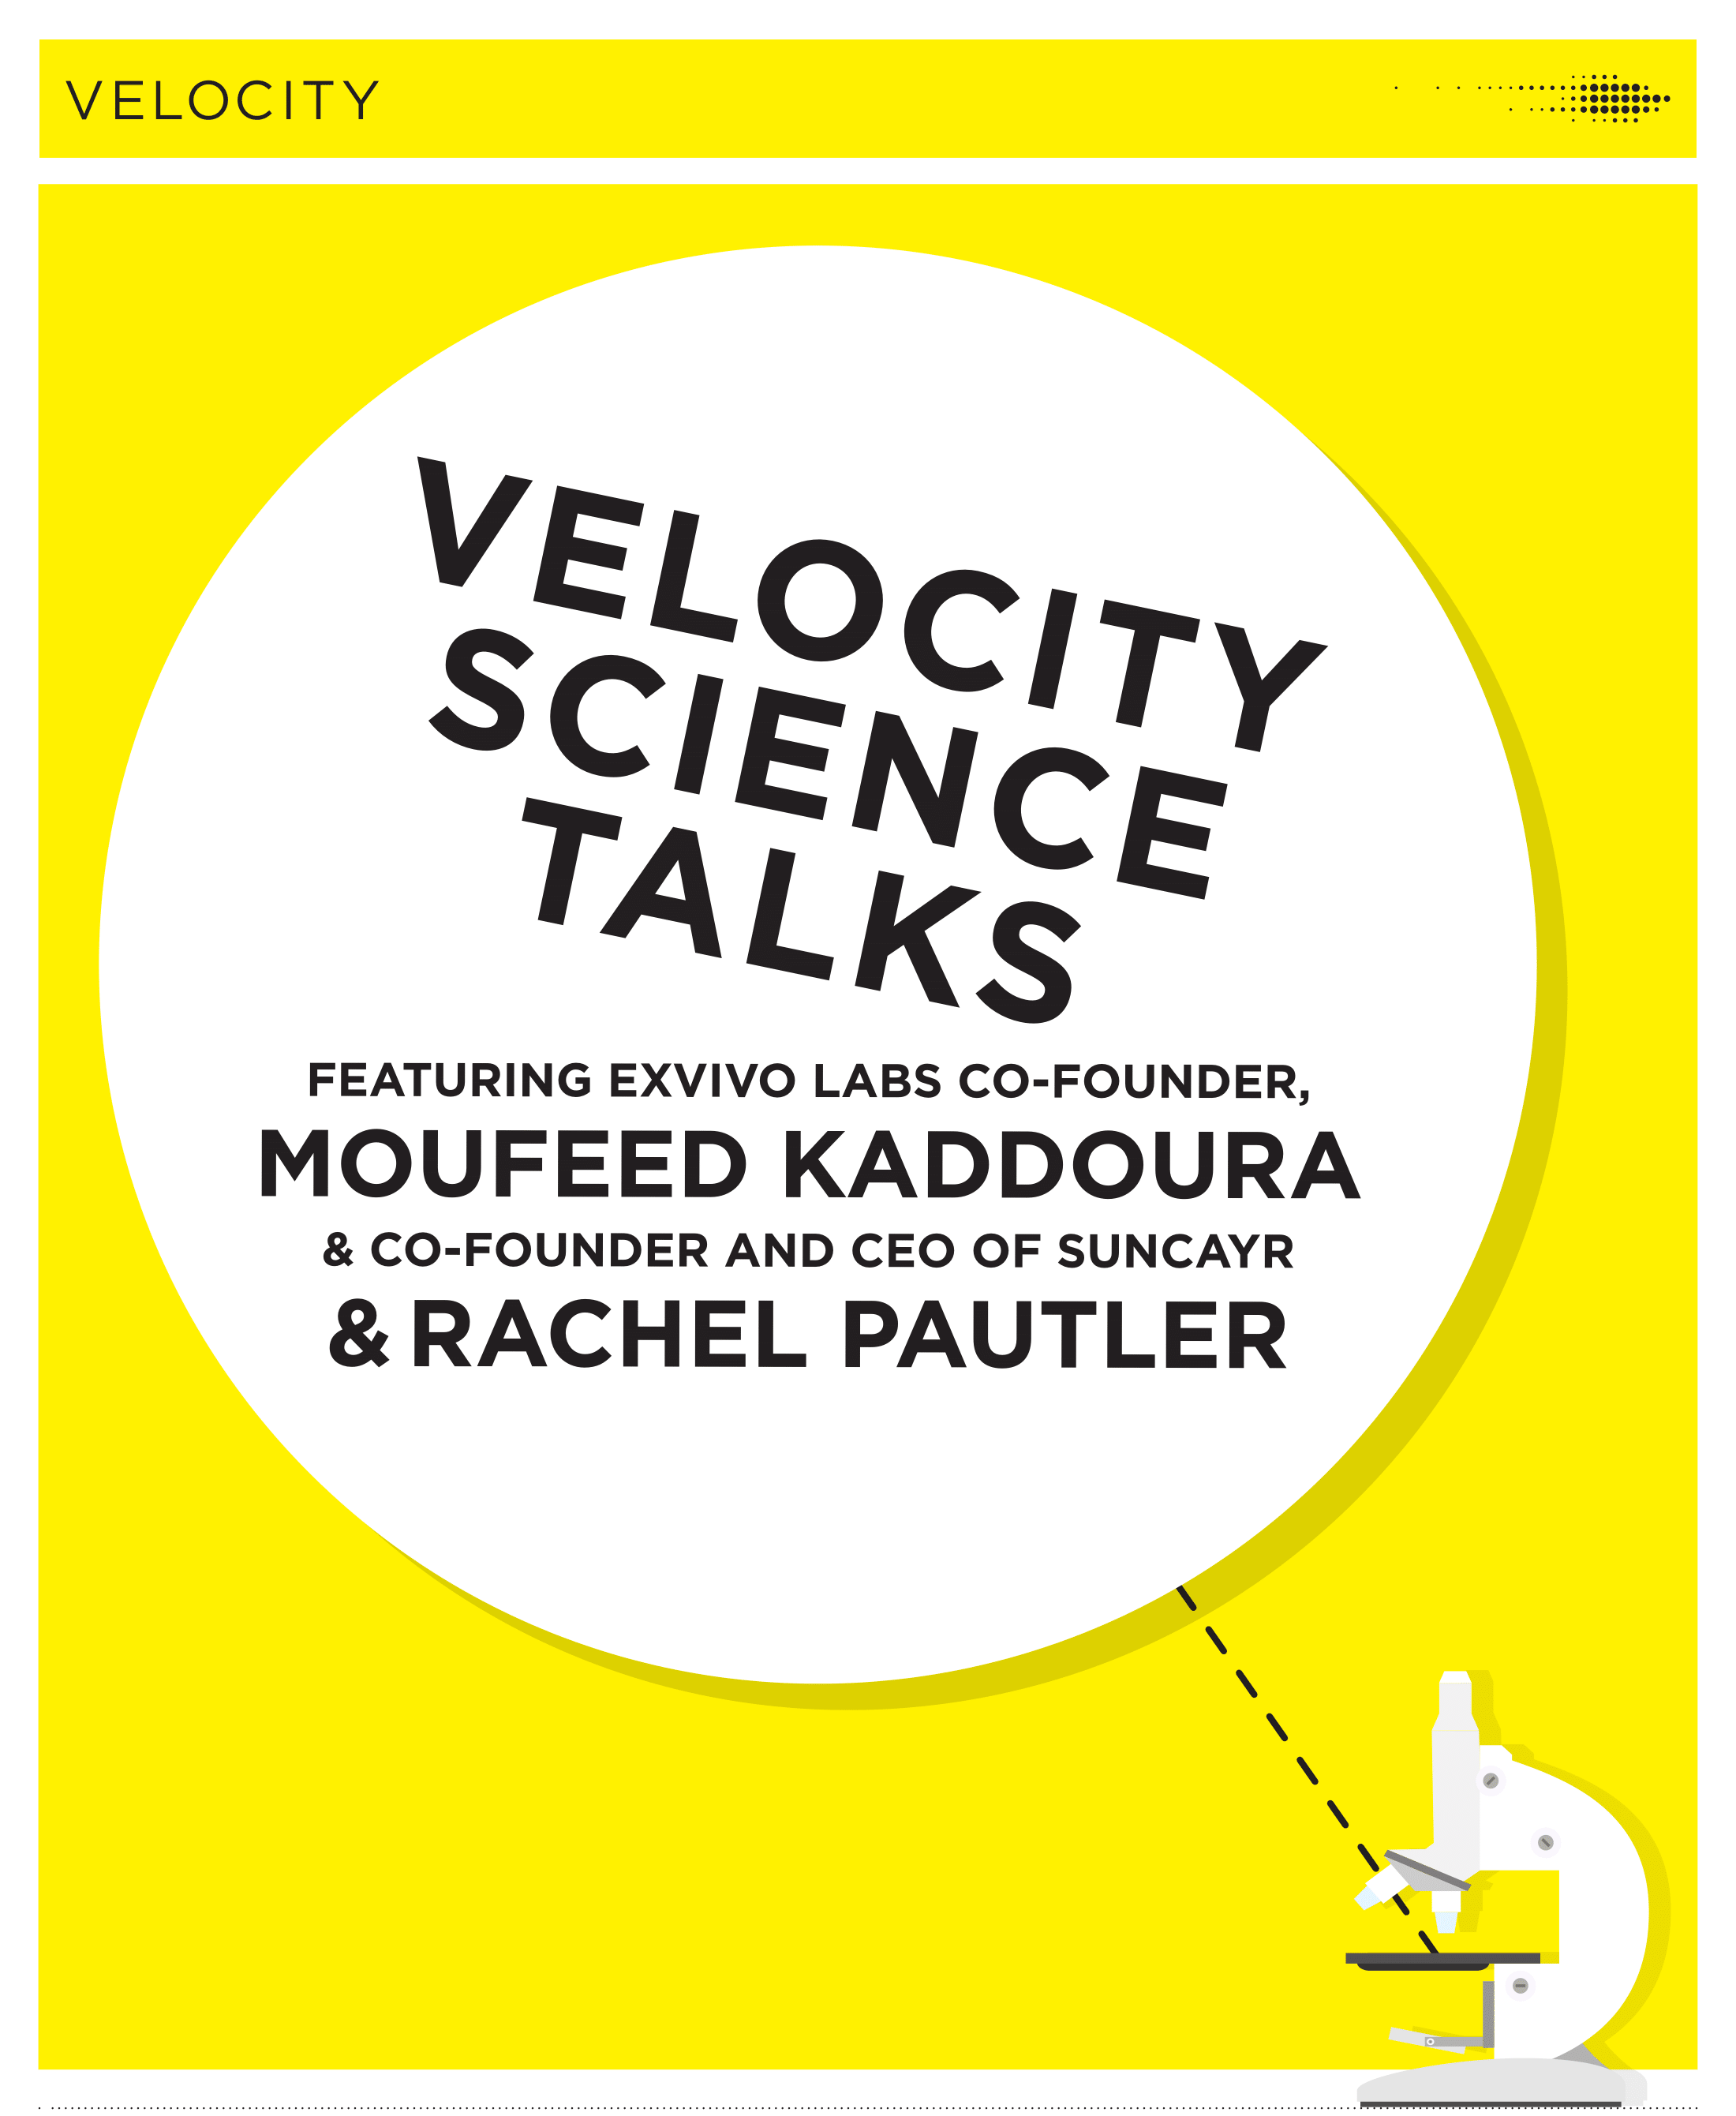 poster of velocity science talks